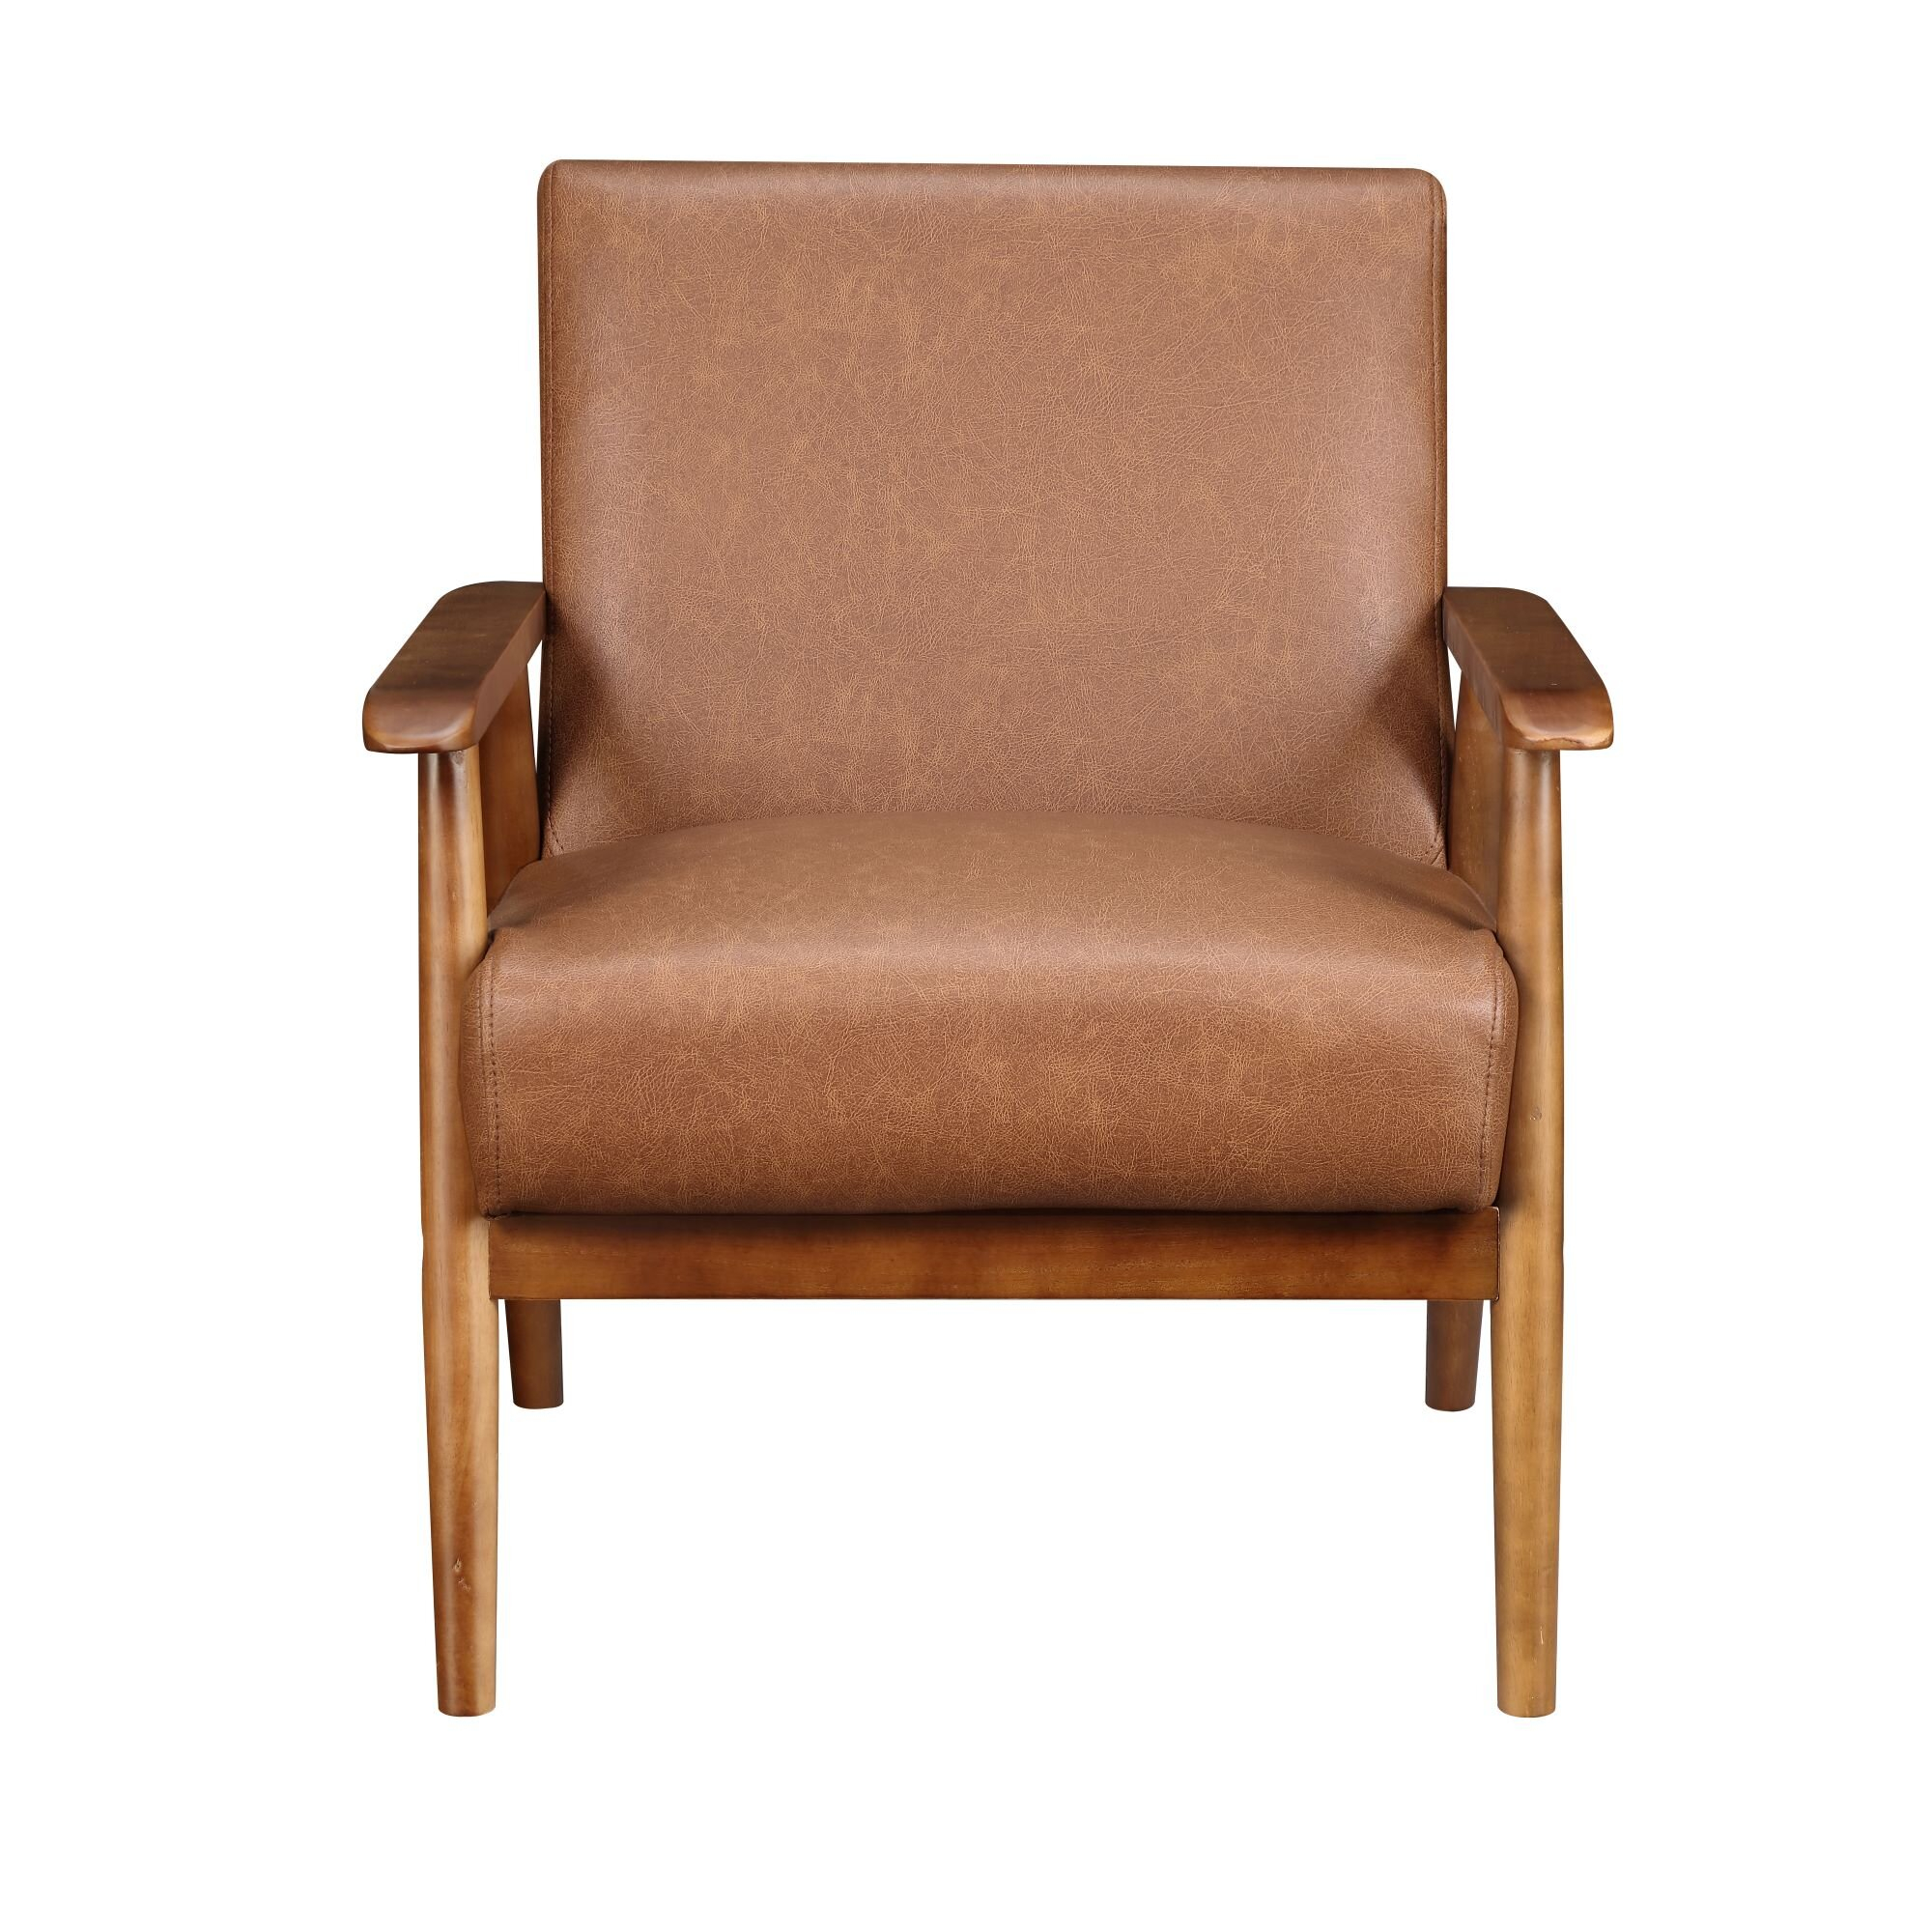 Accent Chairs | Up To 60% Off Through 01/19 | Wayfair For Broadus Genuine Leather Suede Side Chairs (View 7 of 15)